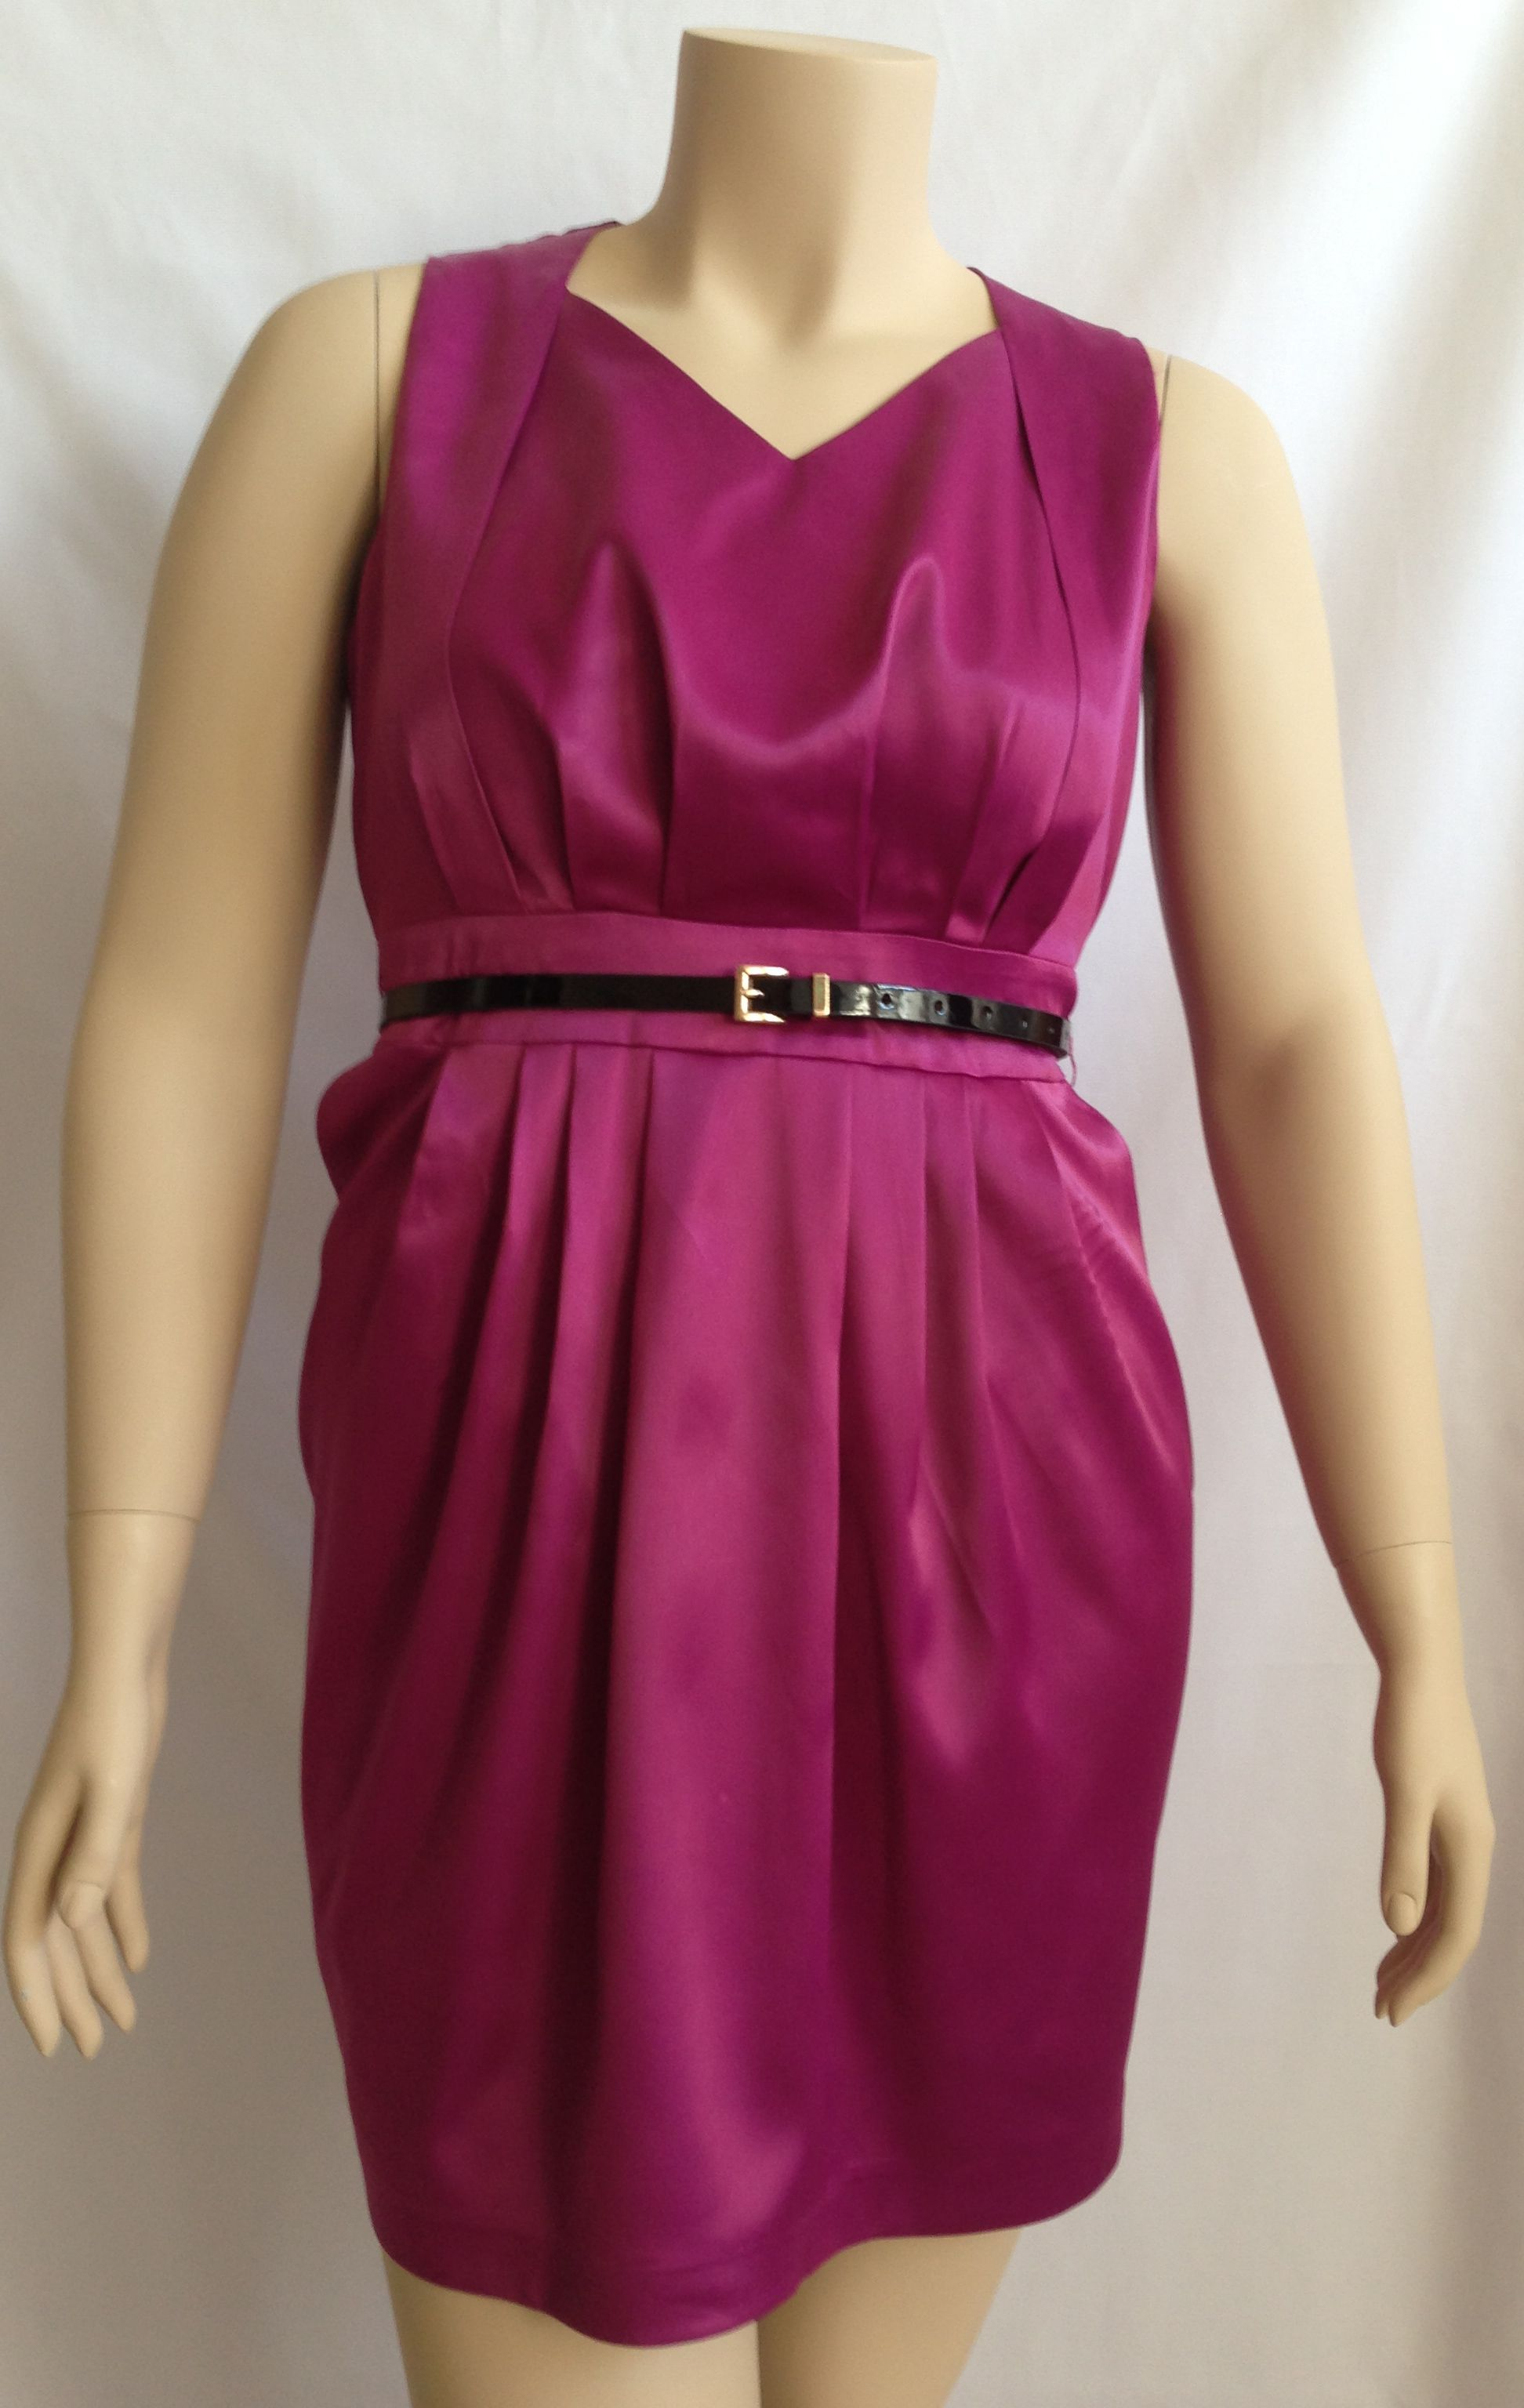 e599d9b43fd Plus Size Women Clothing Store for All Sized including 16